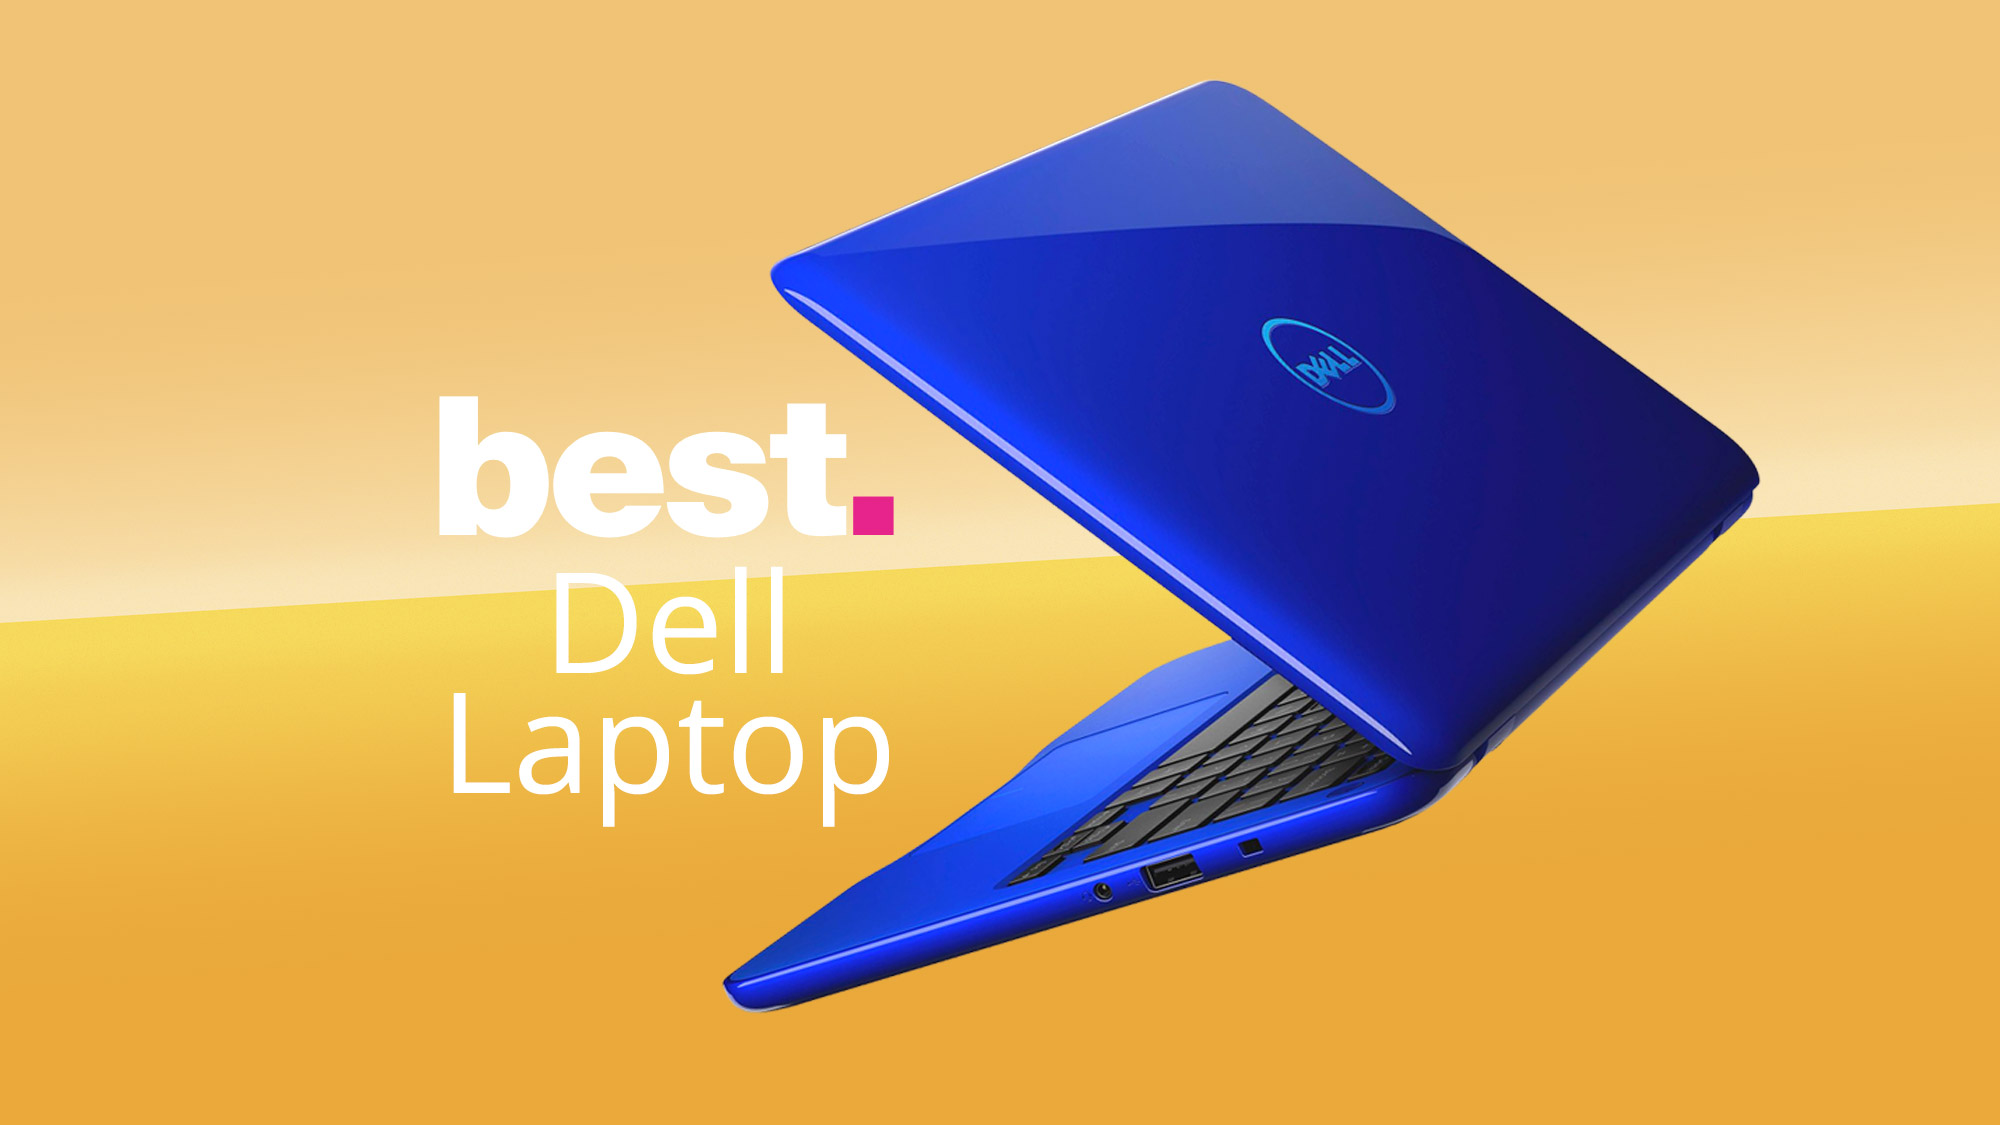 The best Dell laptops 2020 thumbnail